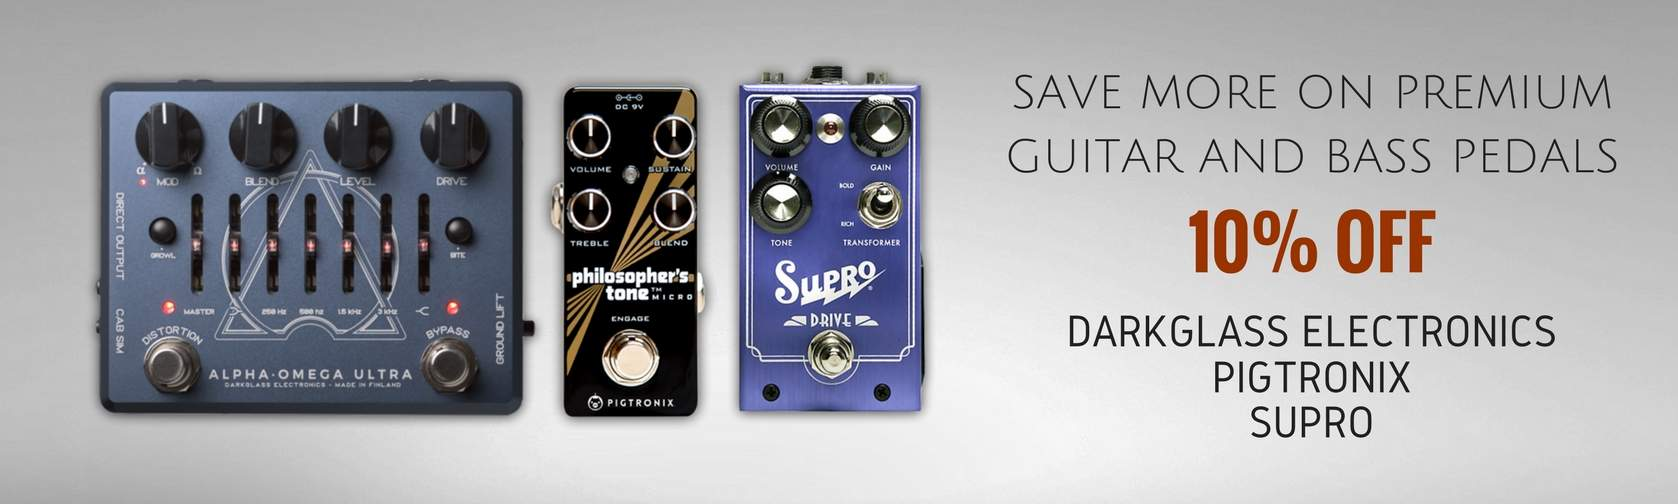 Darkglass Supro Pigtronix